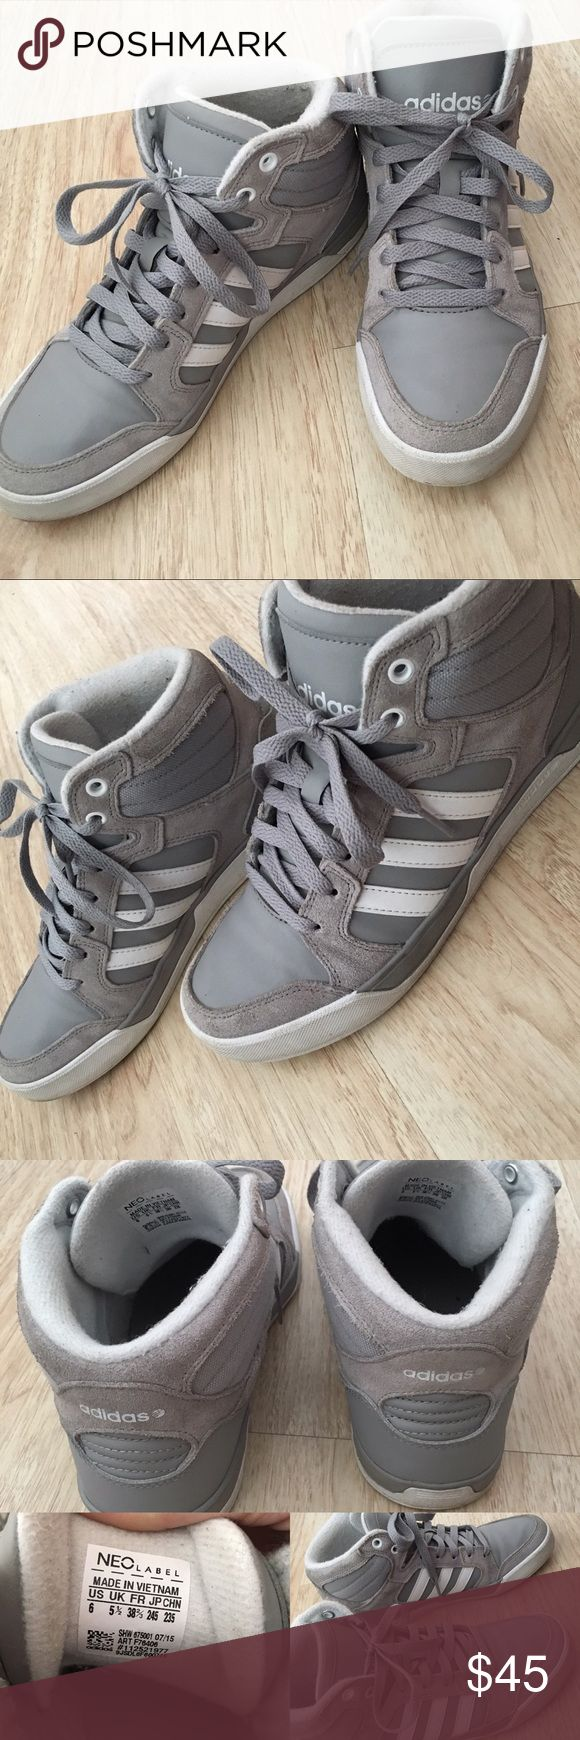 Adidas Neo Label Mid Shoes Gently loved, in wonderful condition. Not scuffed up... same style as the shoe in the last picture but not the exact same. I'm a size 8 in women's and they fit me perfectly. Adidas Shoes Sneakers